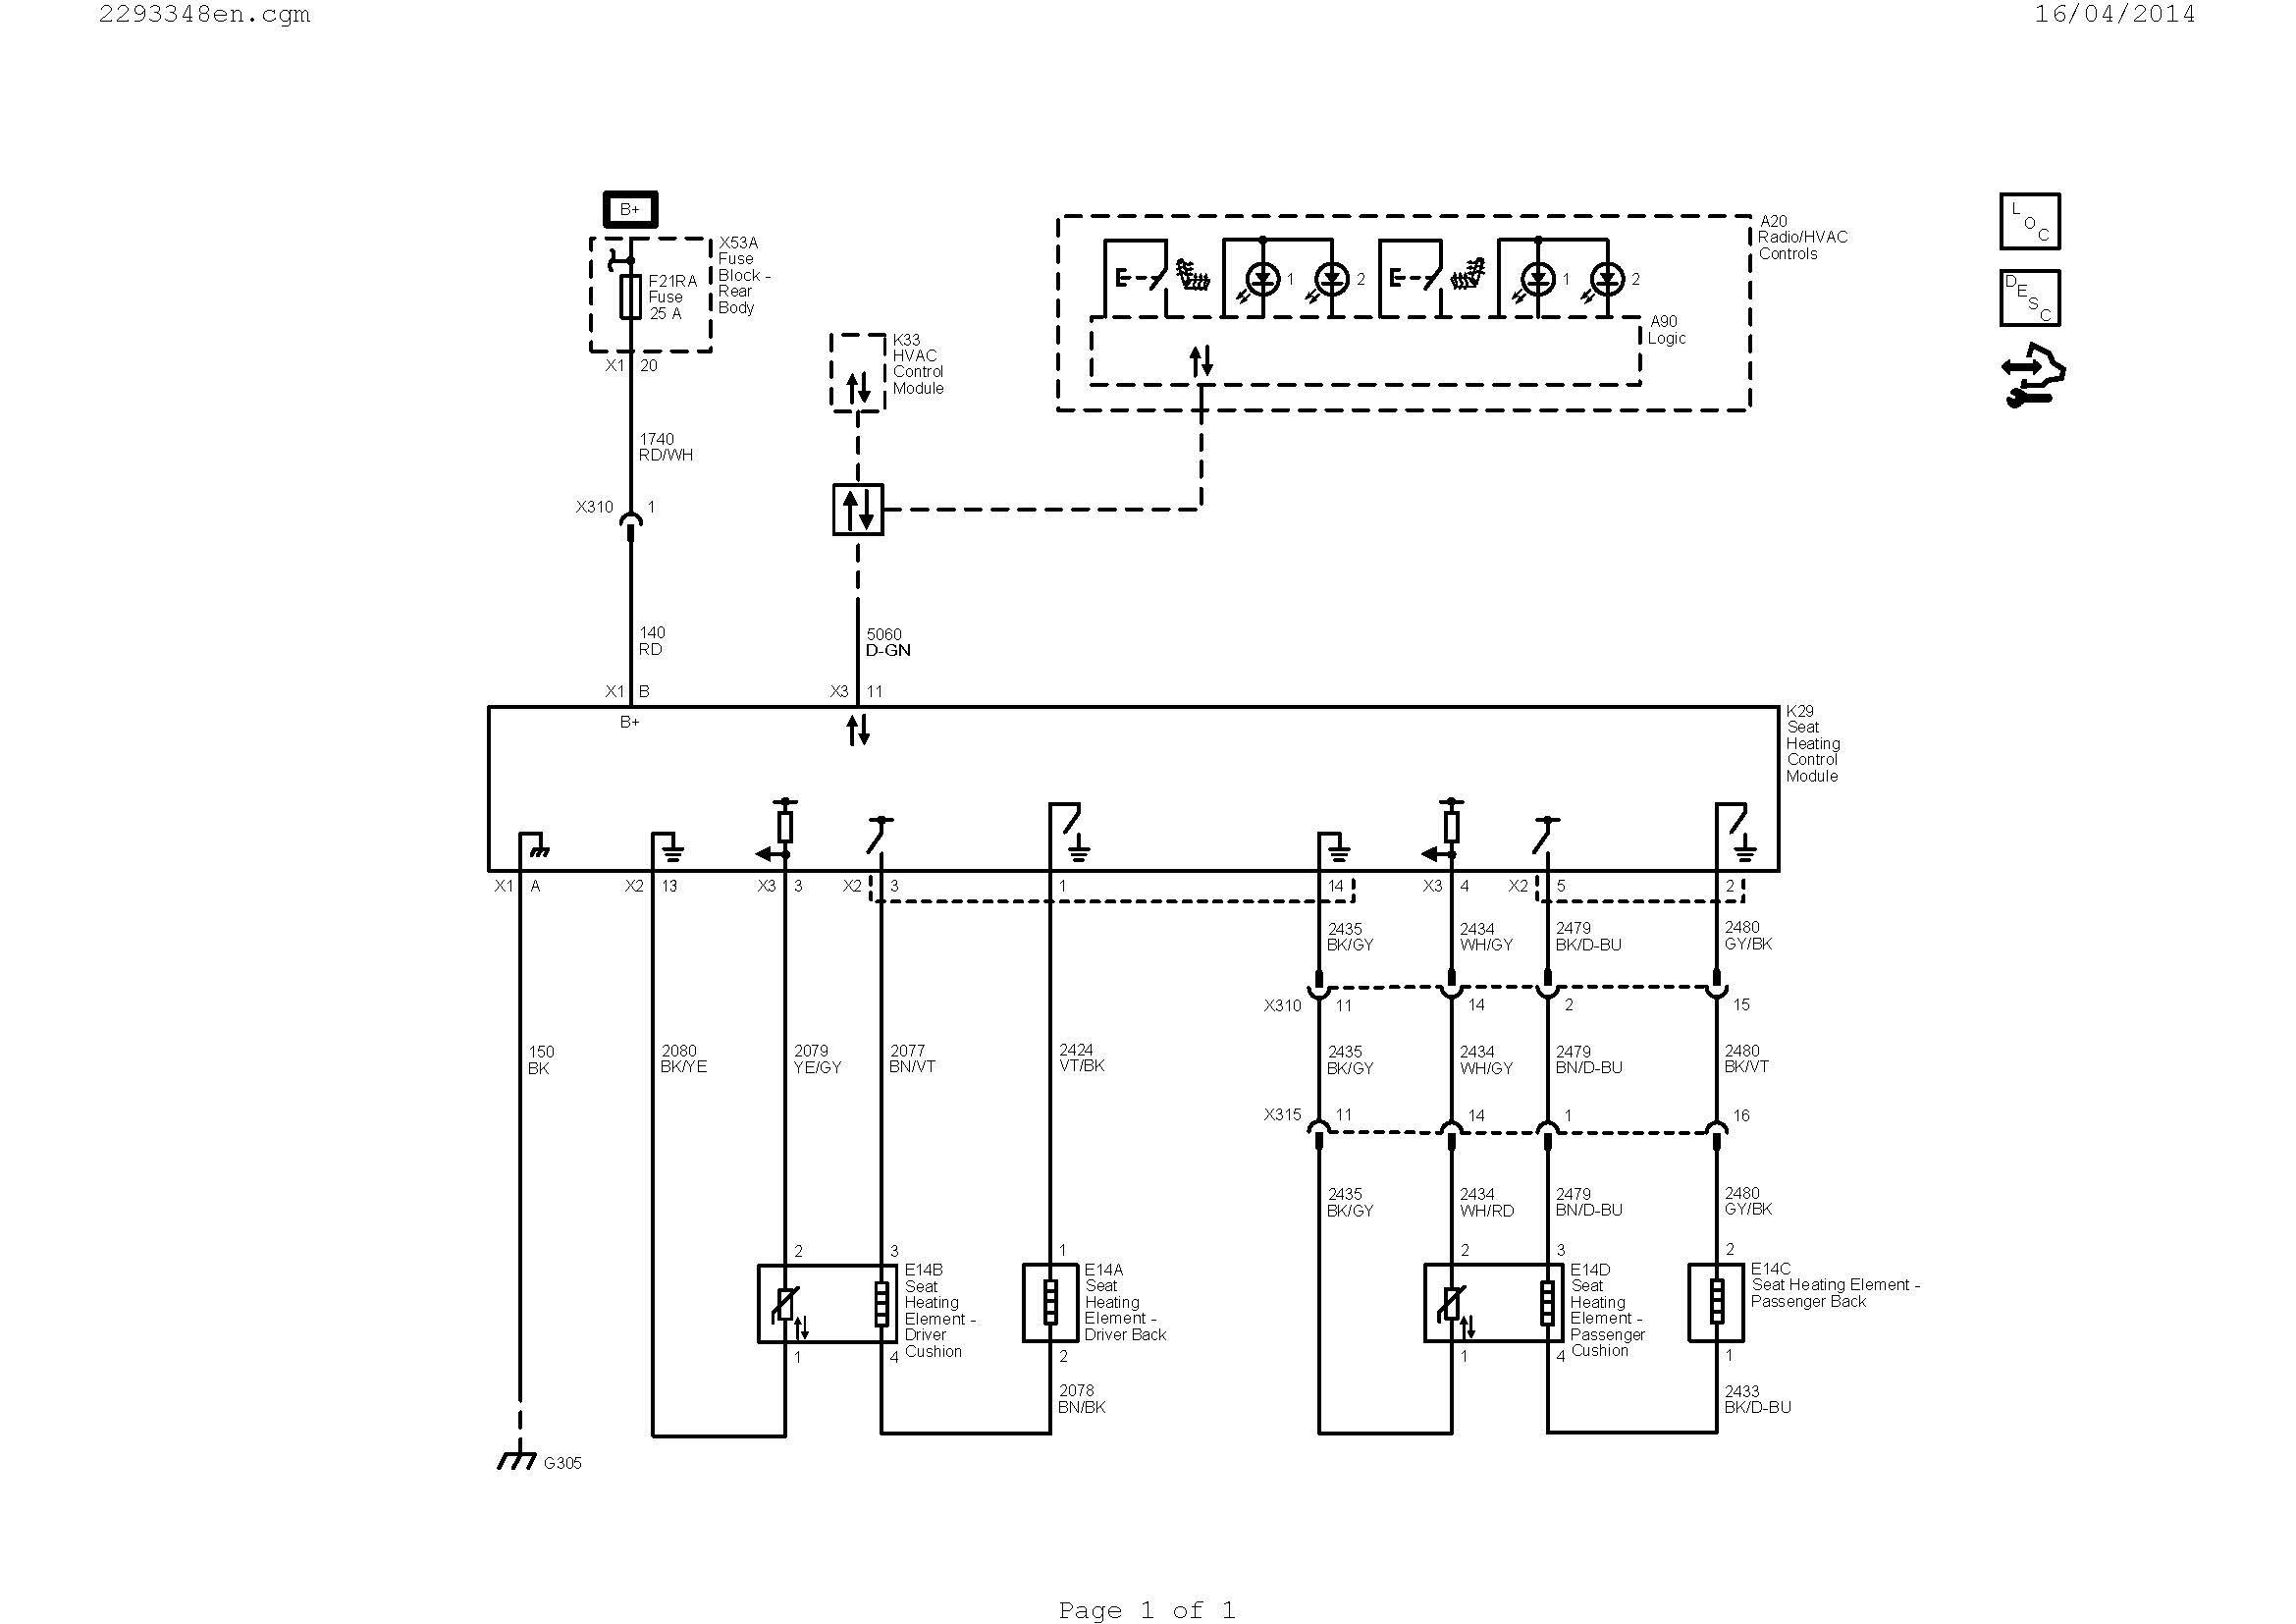 Wiring Diagram for the Nest thermostat Sample on nest zoned wiring, nest thermostat humidifier wiring, nest thermostat setup, nest wiring guide, nest thermostat heat pump, nest thermostat review, nest thermostat wiring plate, nest thermostat parts, nest thermostat battery, halogen transformer circuit diagram, nest smart thermostat vs honeywell, nest thermostat controls, nest 2 stage heating wiring, nest thermostat wires, nest thermostat installation, nest thermostat backplate, nest learning thermostat wiring, nest thermostat connections, electronic thermostat circuit diagram, nest thermostat problems,